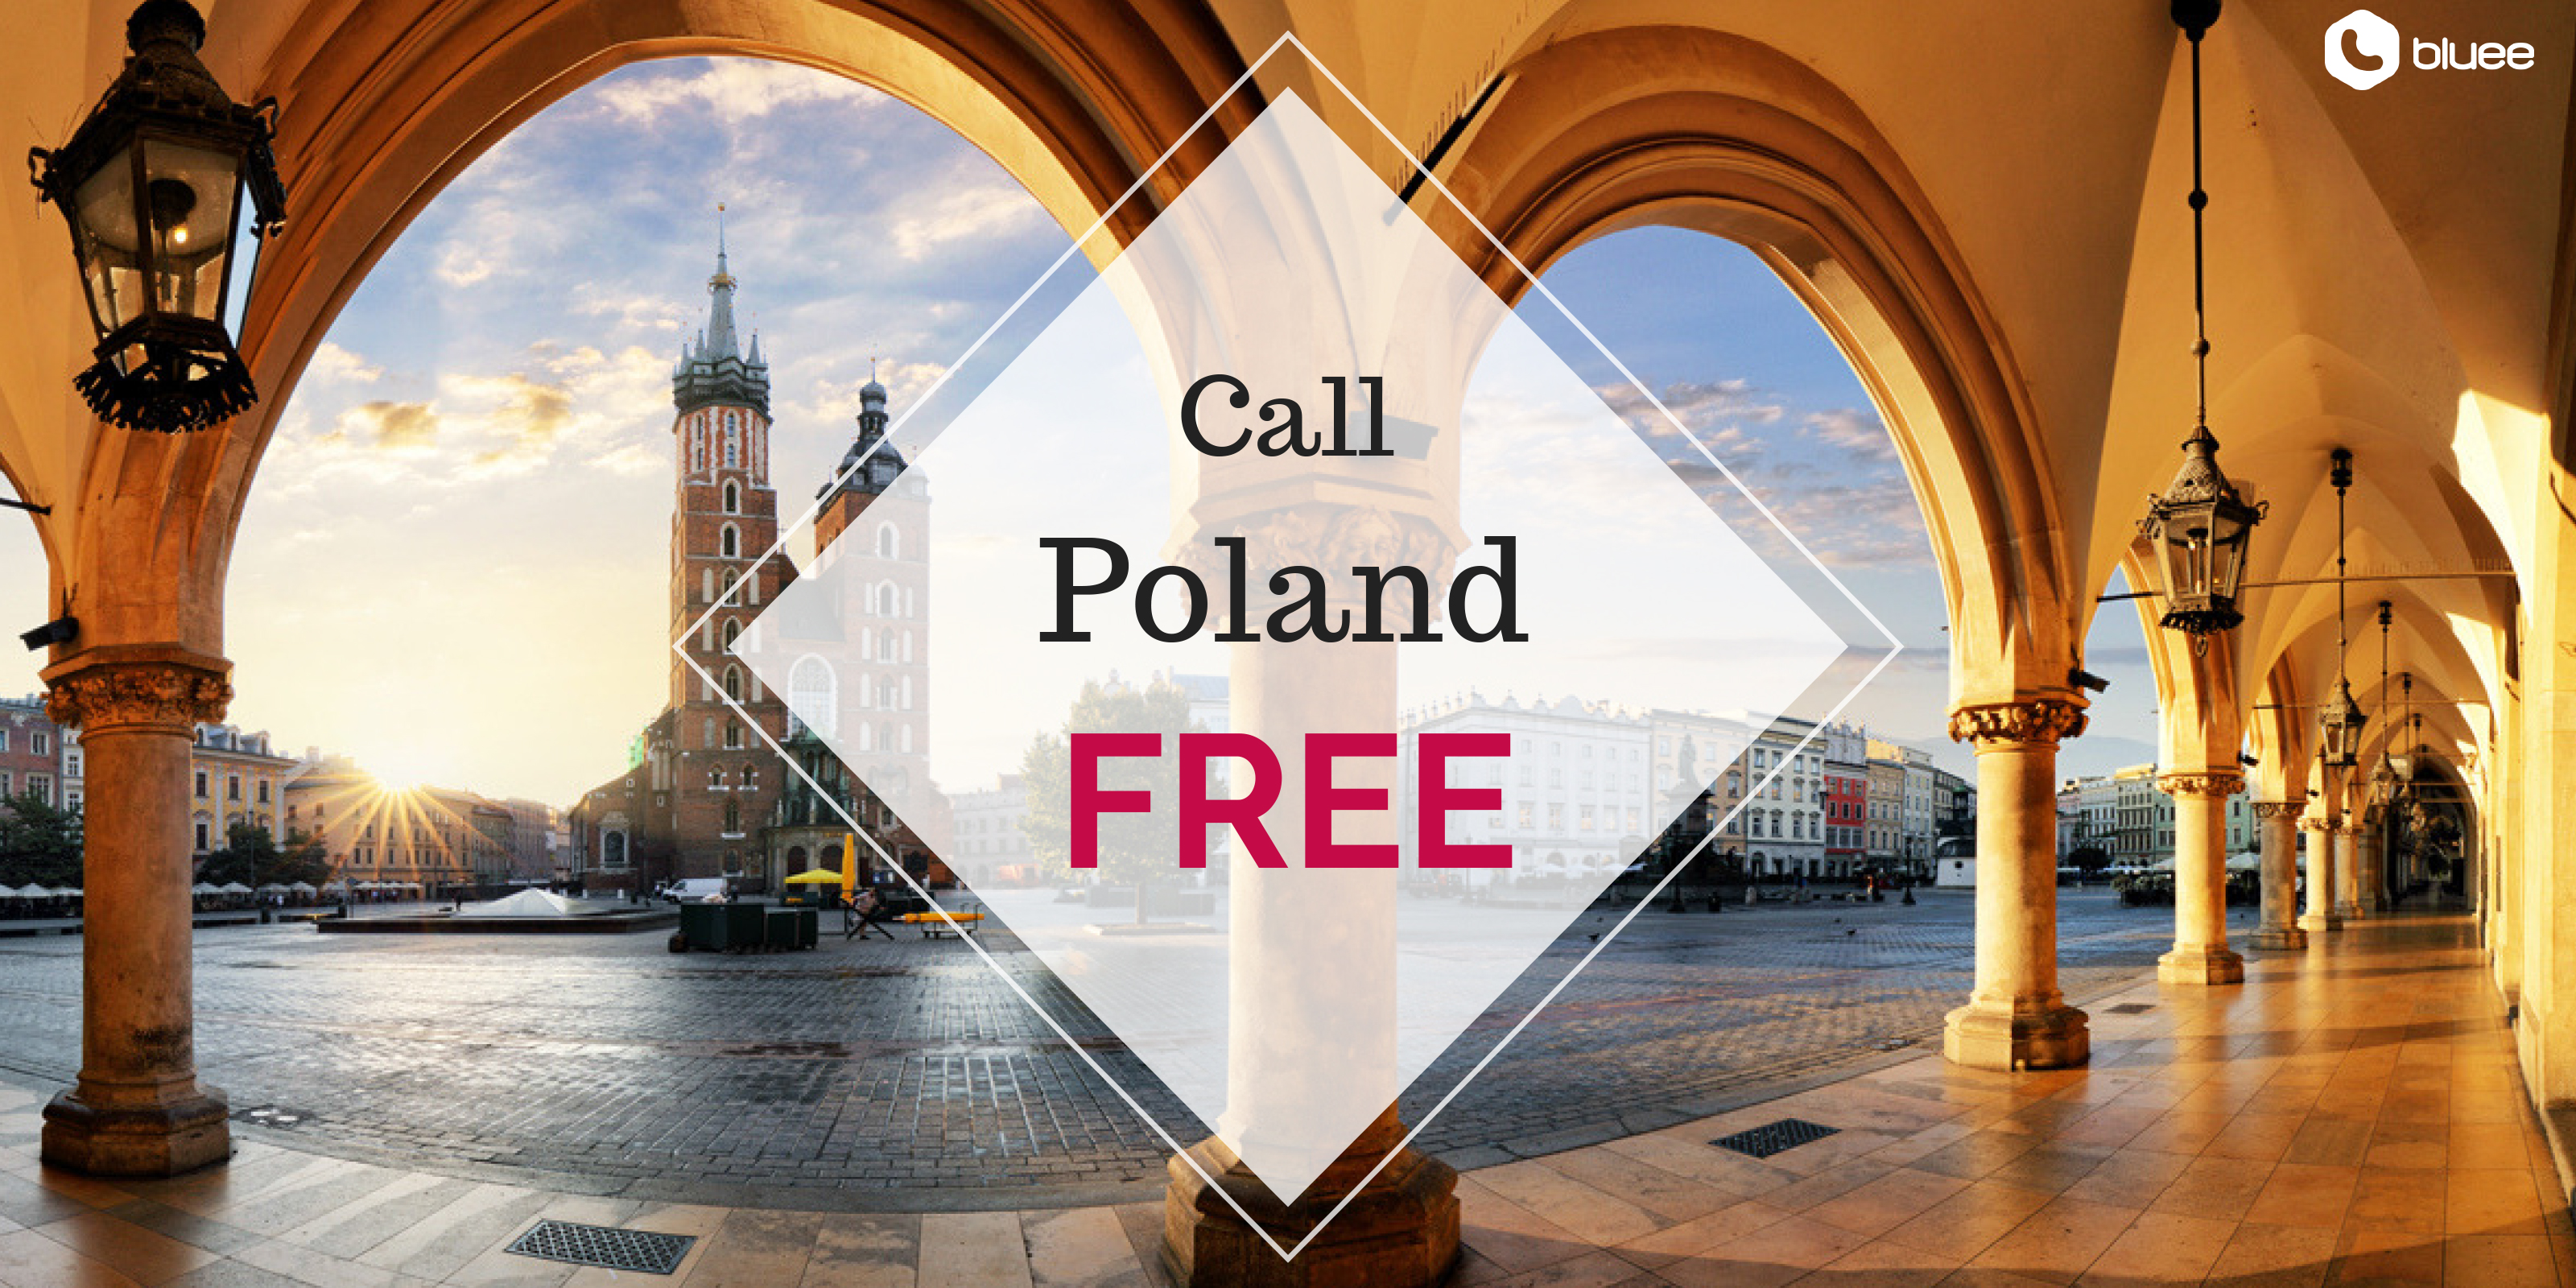 Free Thursday: Call Poland Landline for FREE!